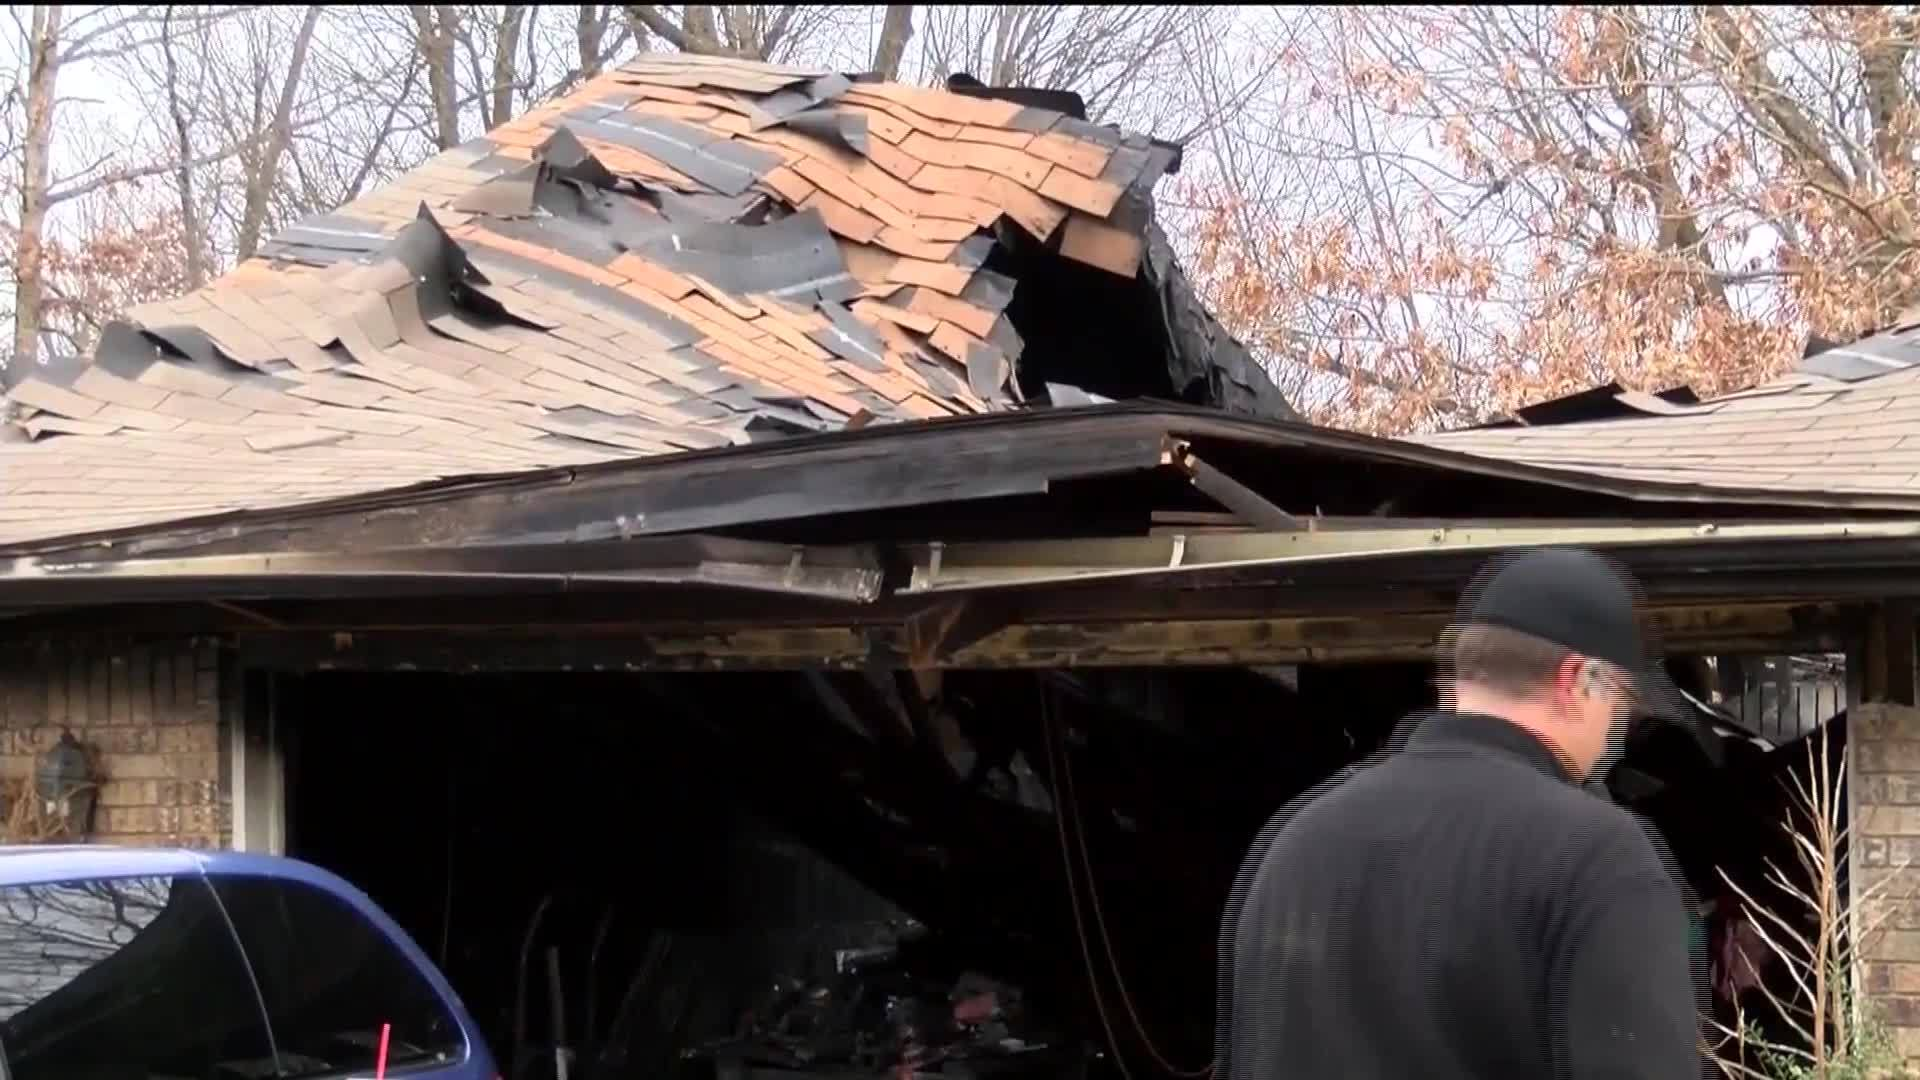 House_Fire_in_Sprindgale_KNWA_8_20190203001822